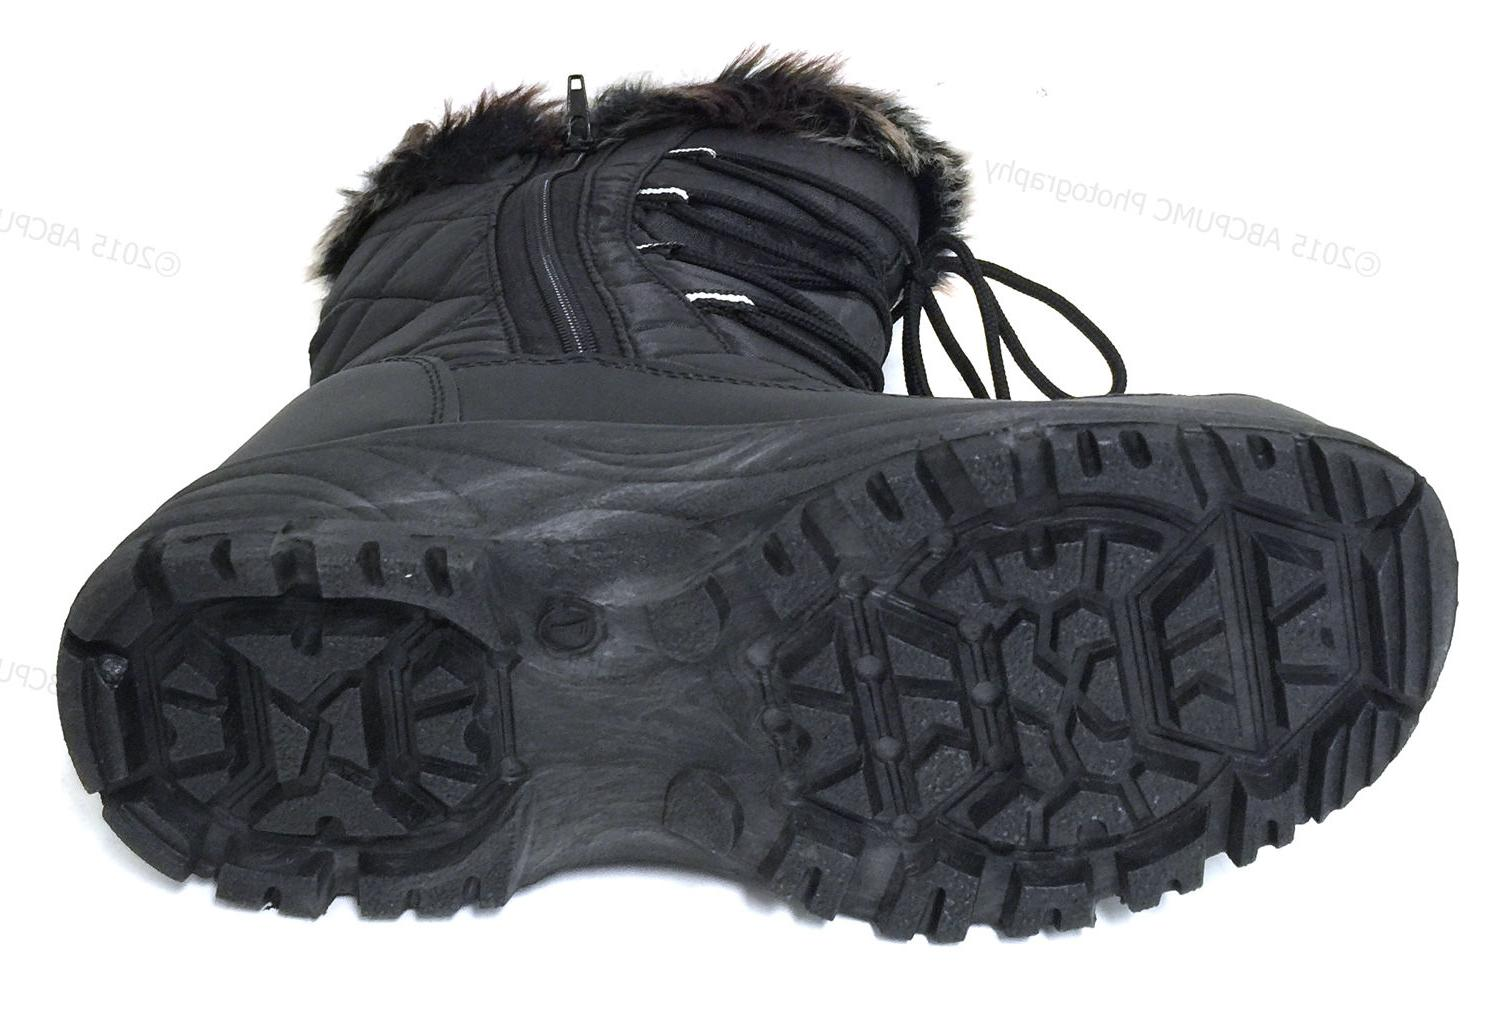 Women's Winter Black Repellent Insulated Shoes Sizes